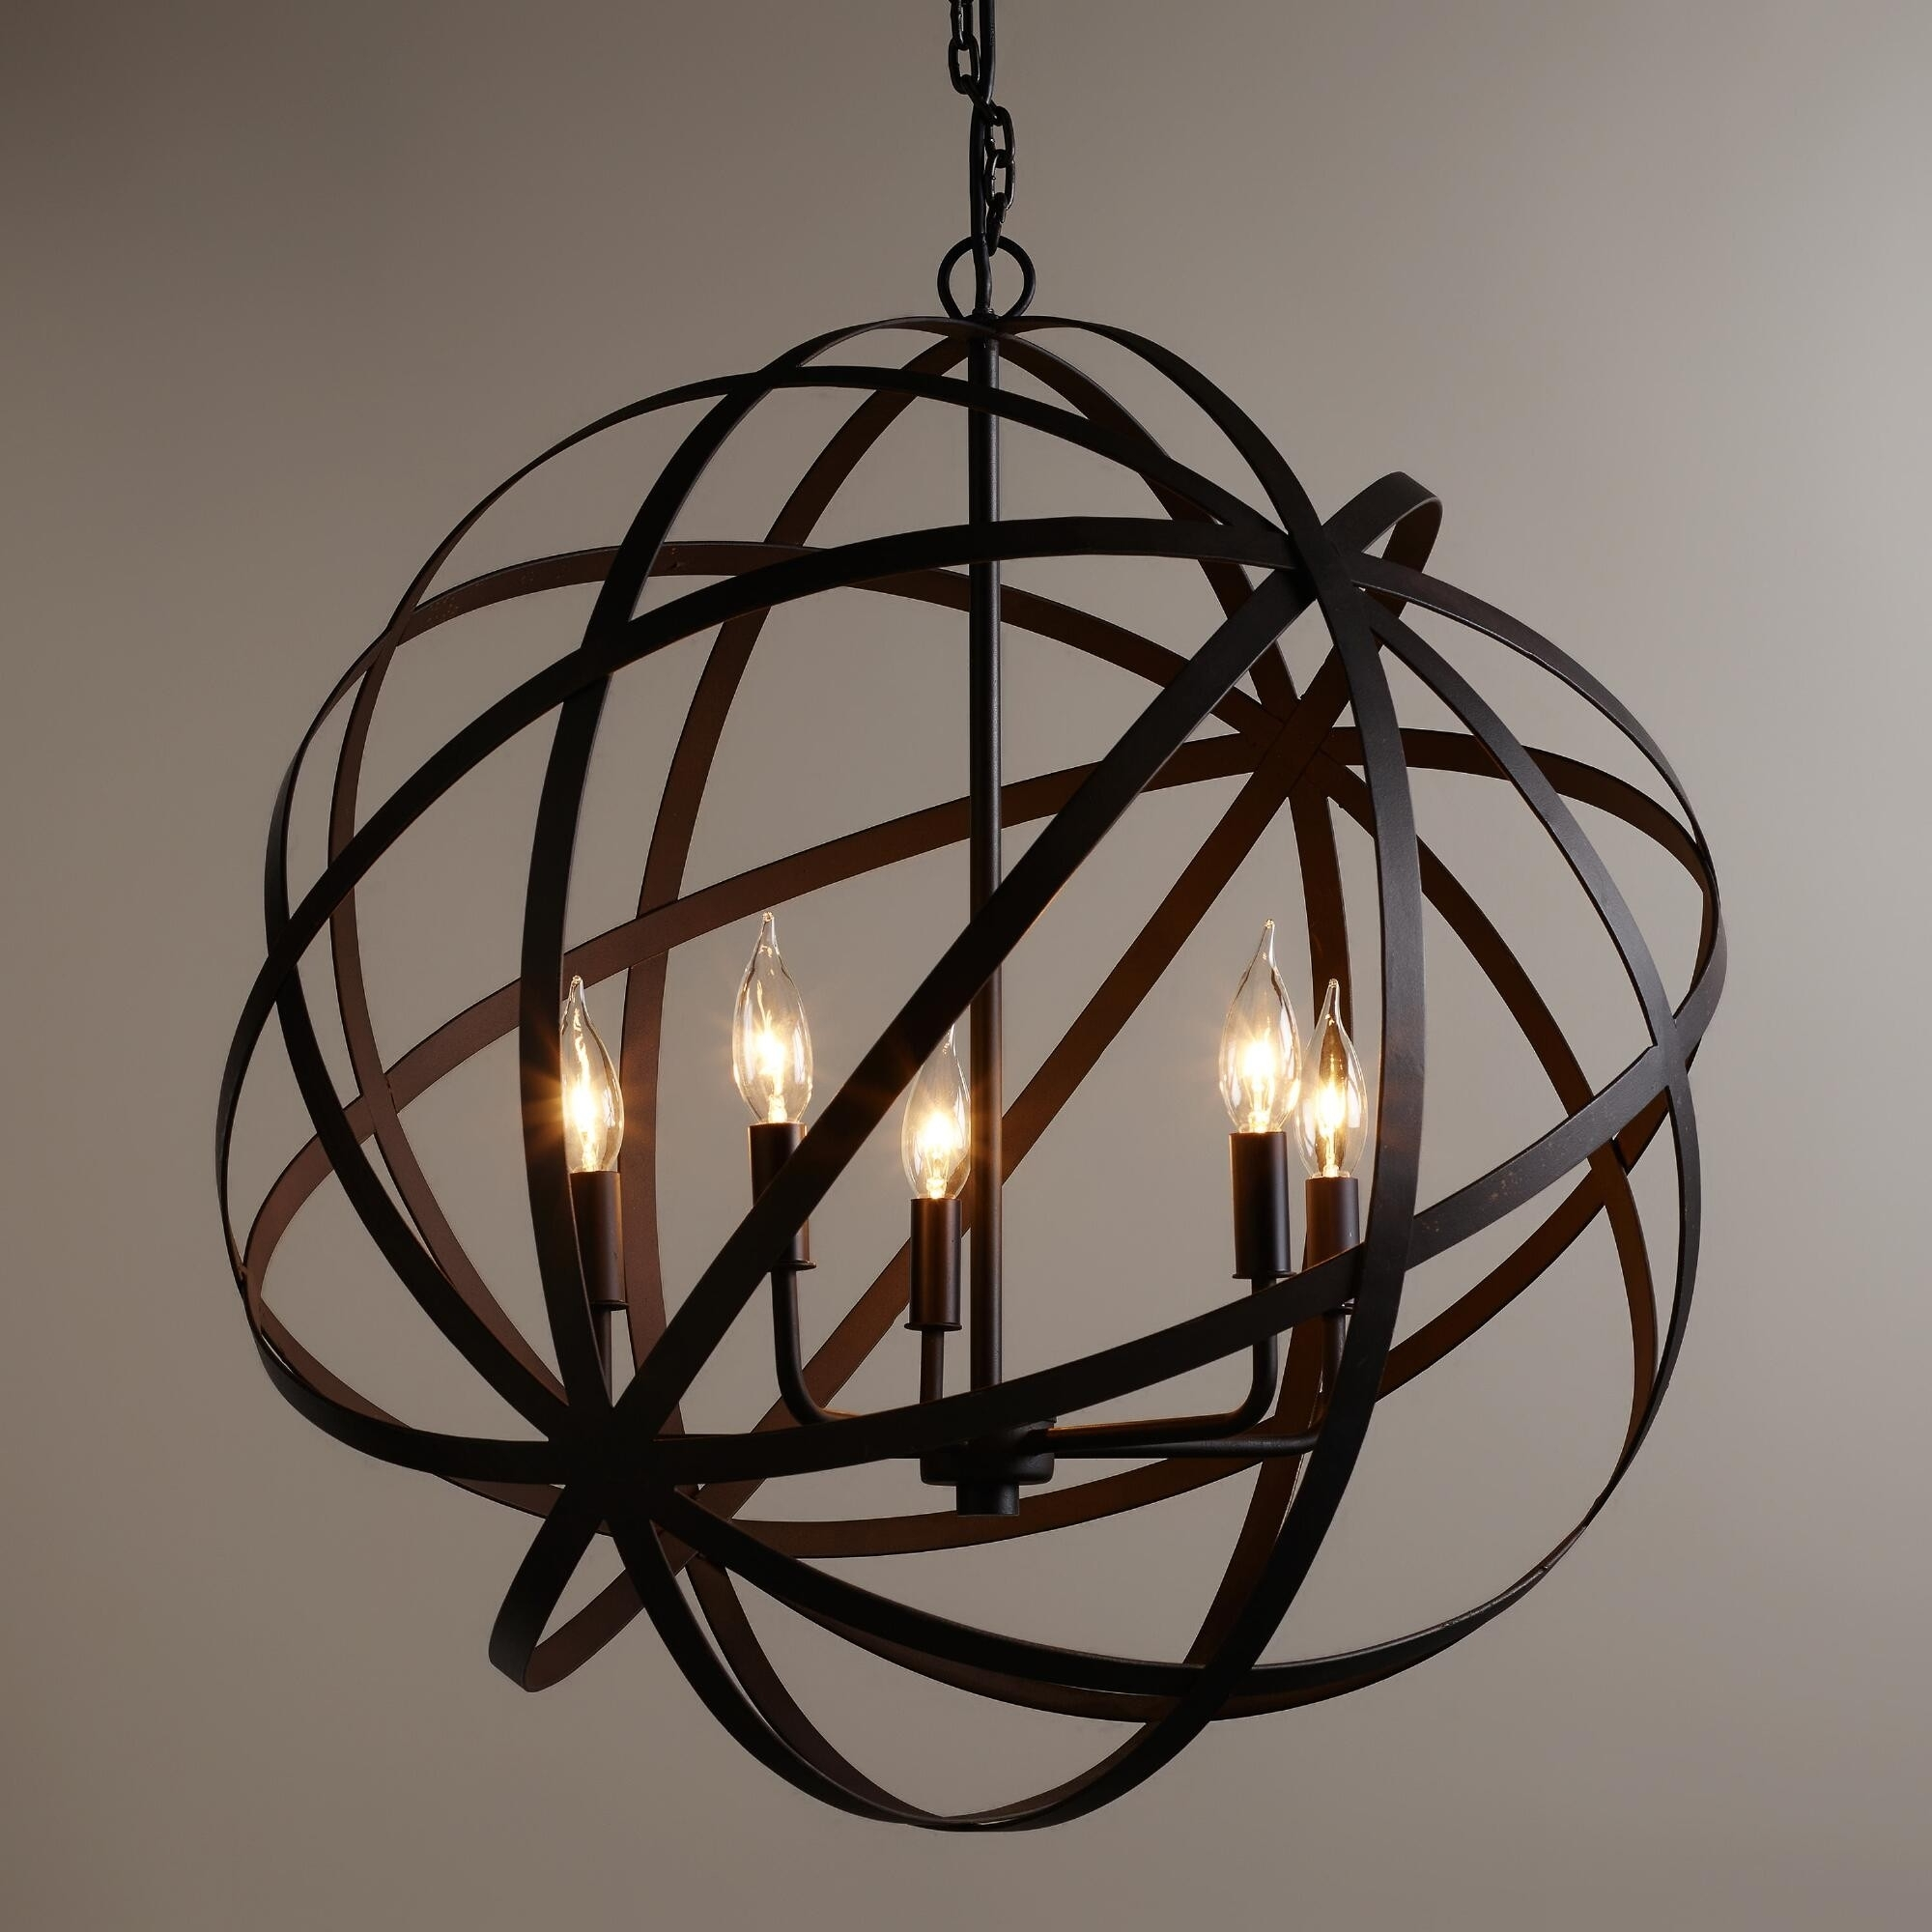 Most Recent Contemporary Rustic Outdoor Lighting At Wayfair In Outdoor Lighting: Marvellous Large Exterior Chandeliers Dusk To Dawn (View 16 of 20)